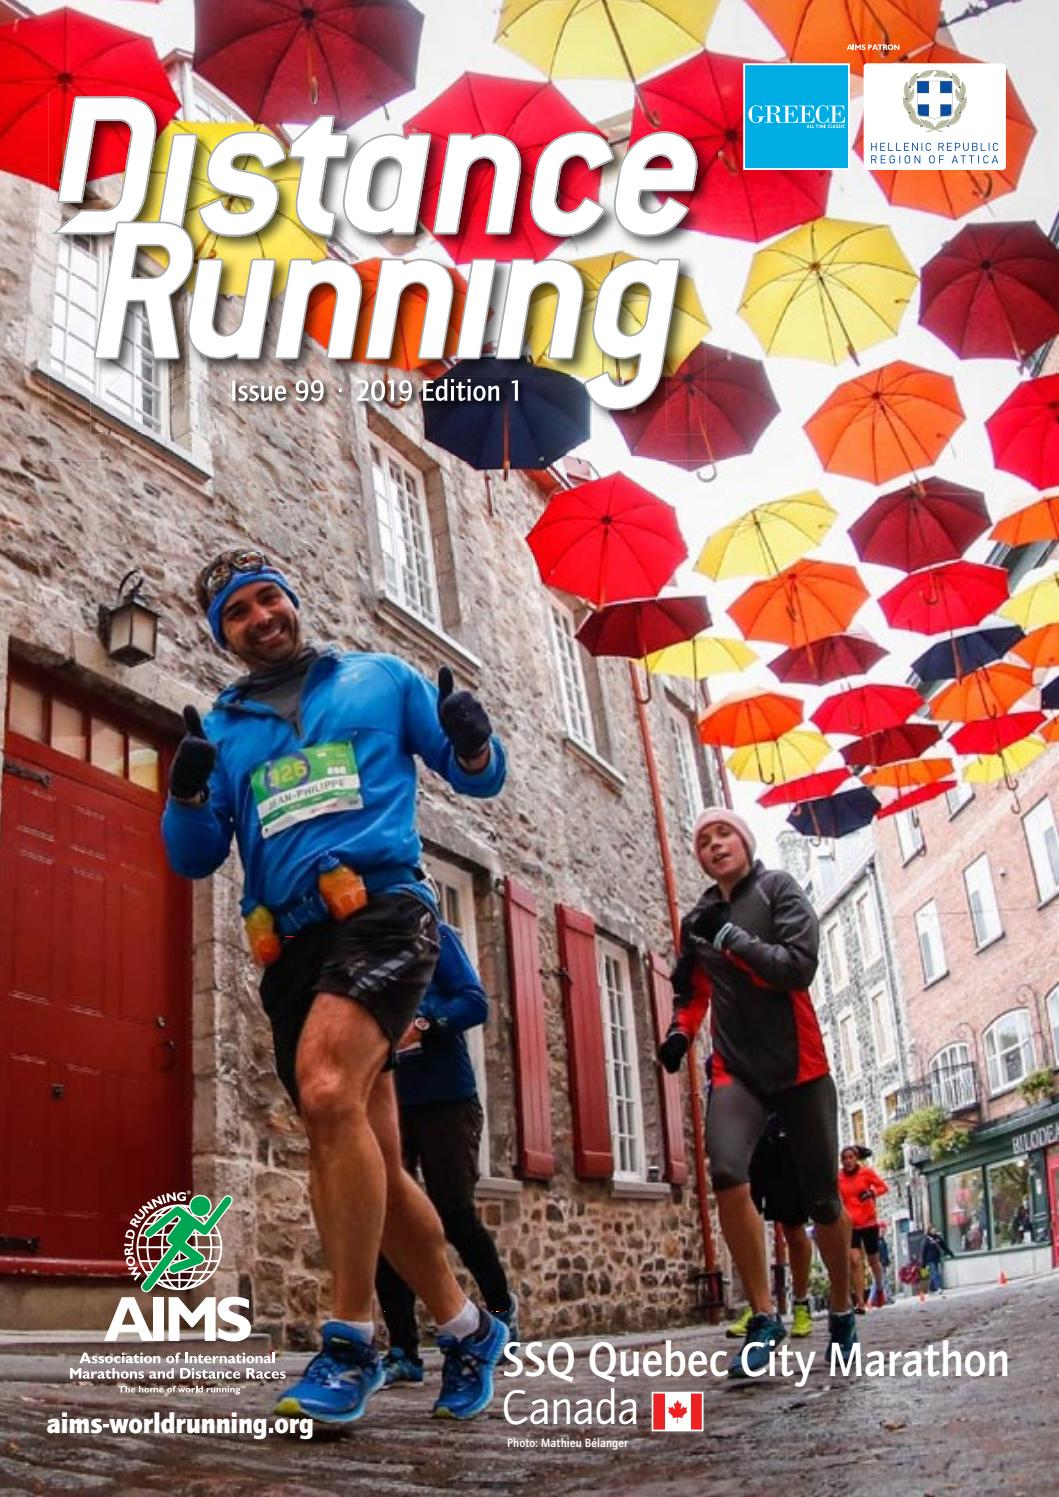 ffbbfa2a8 Distance Running 2019 Edition 1 by Distance Running - issuu